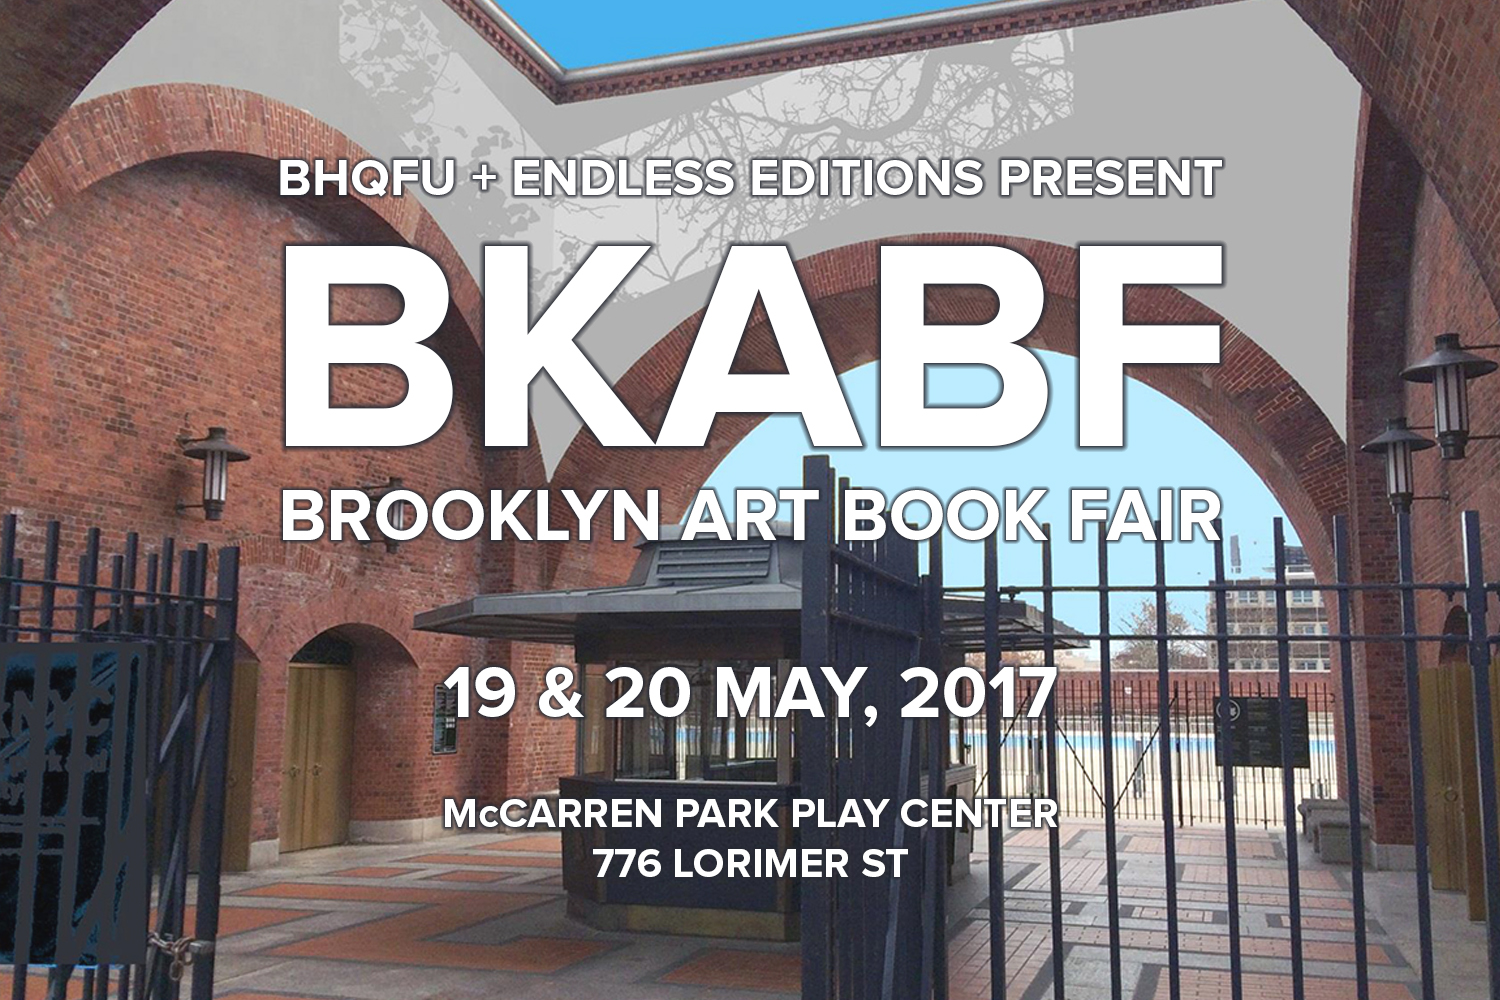 Brooklyn Art Book Fair  May 19 - 20